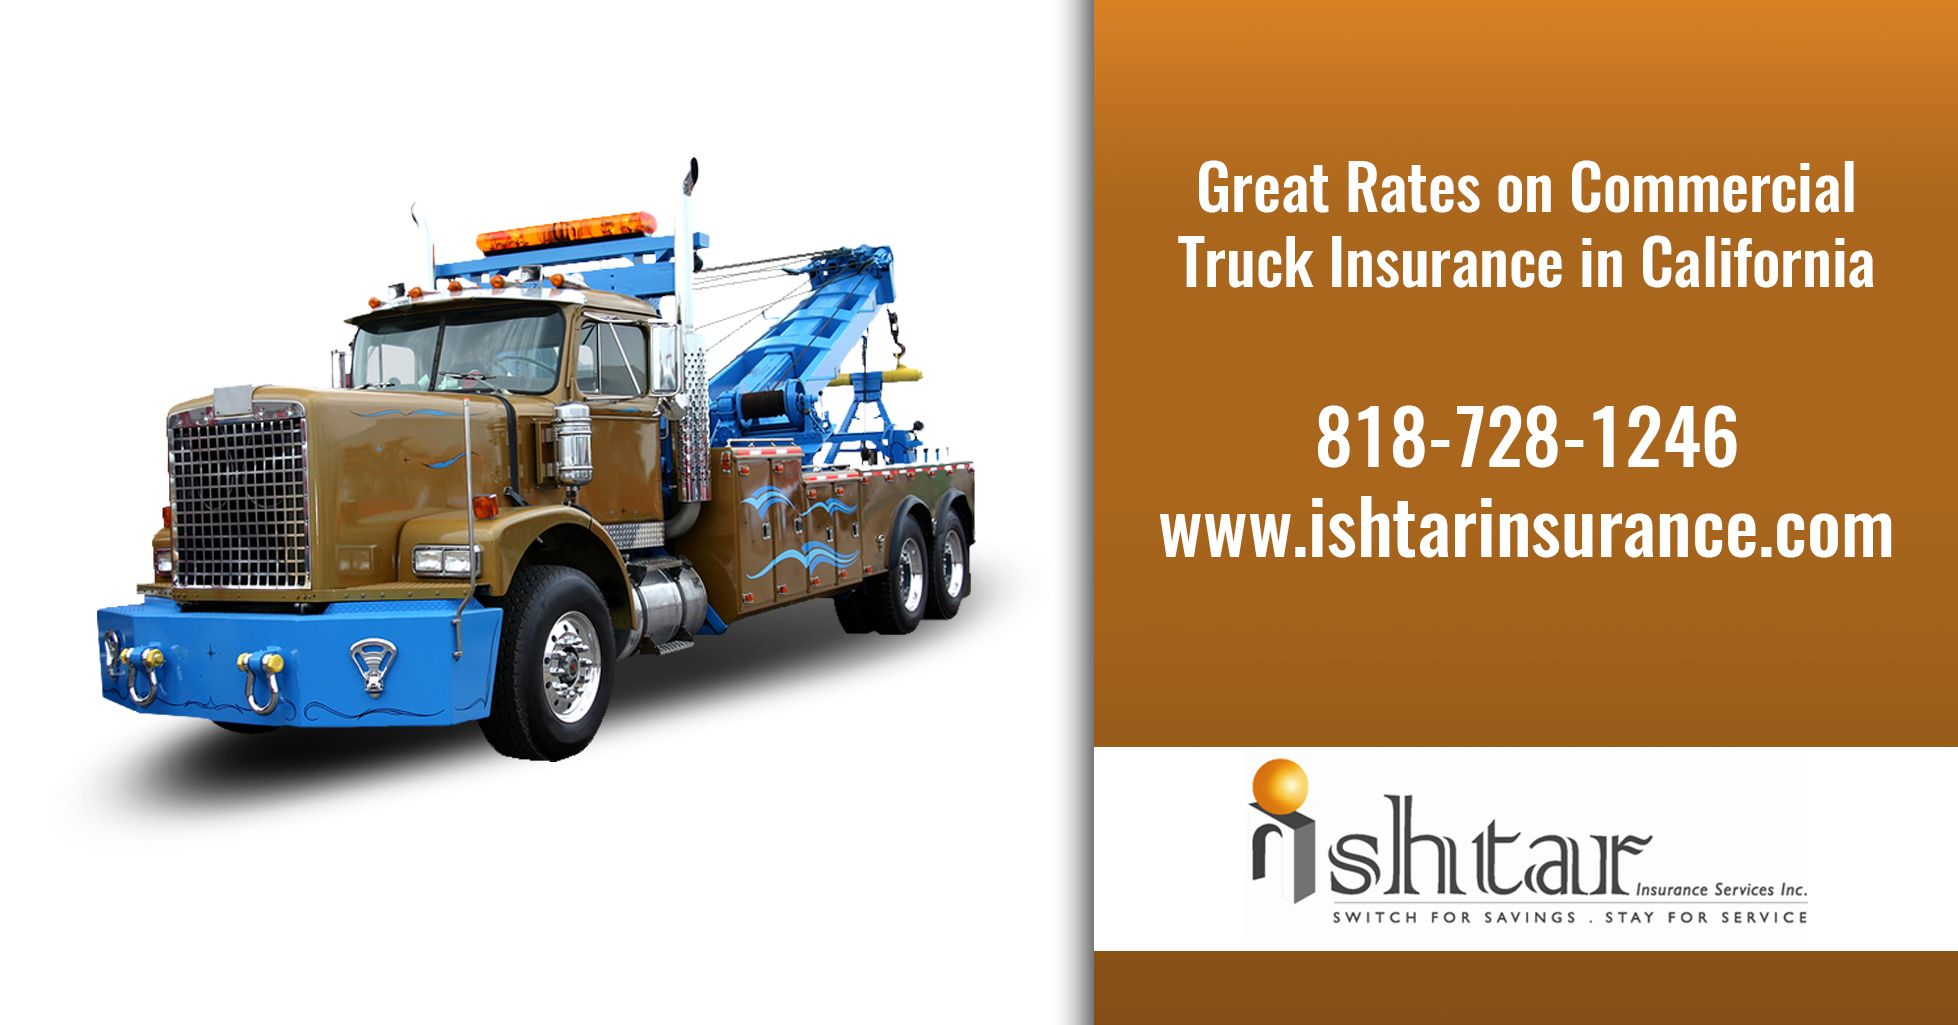 We Offer Great Rates On Commercial Truck Insurance In California